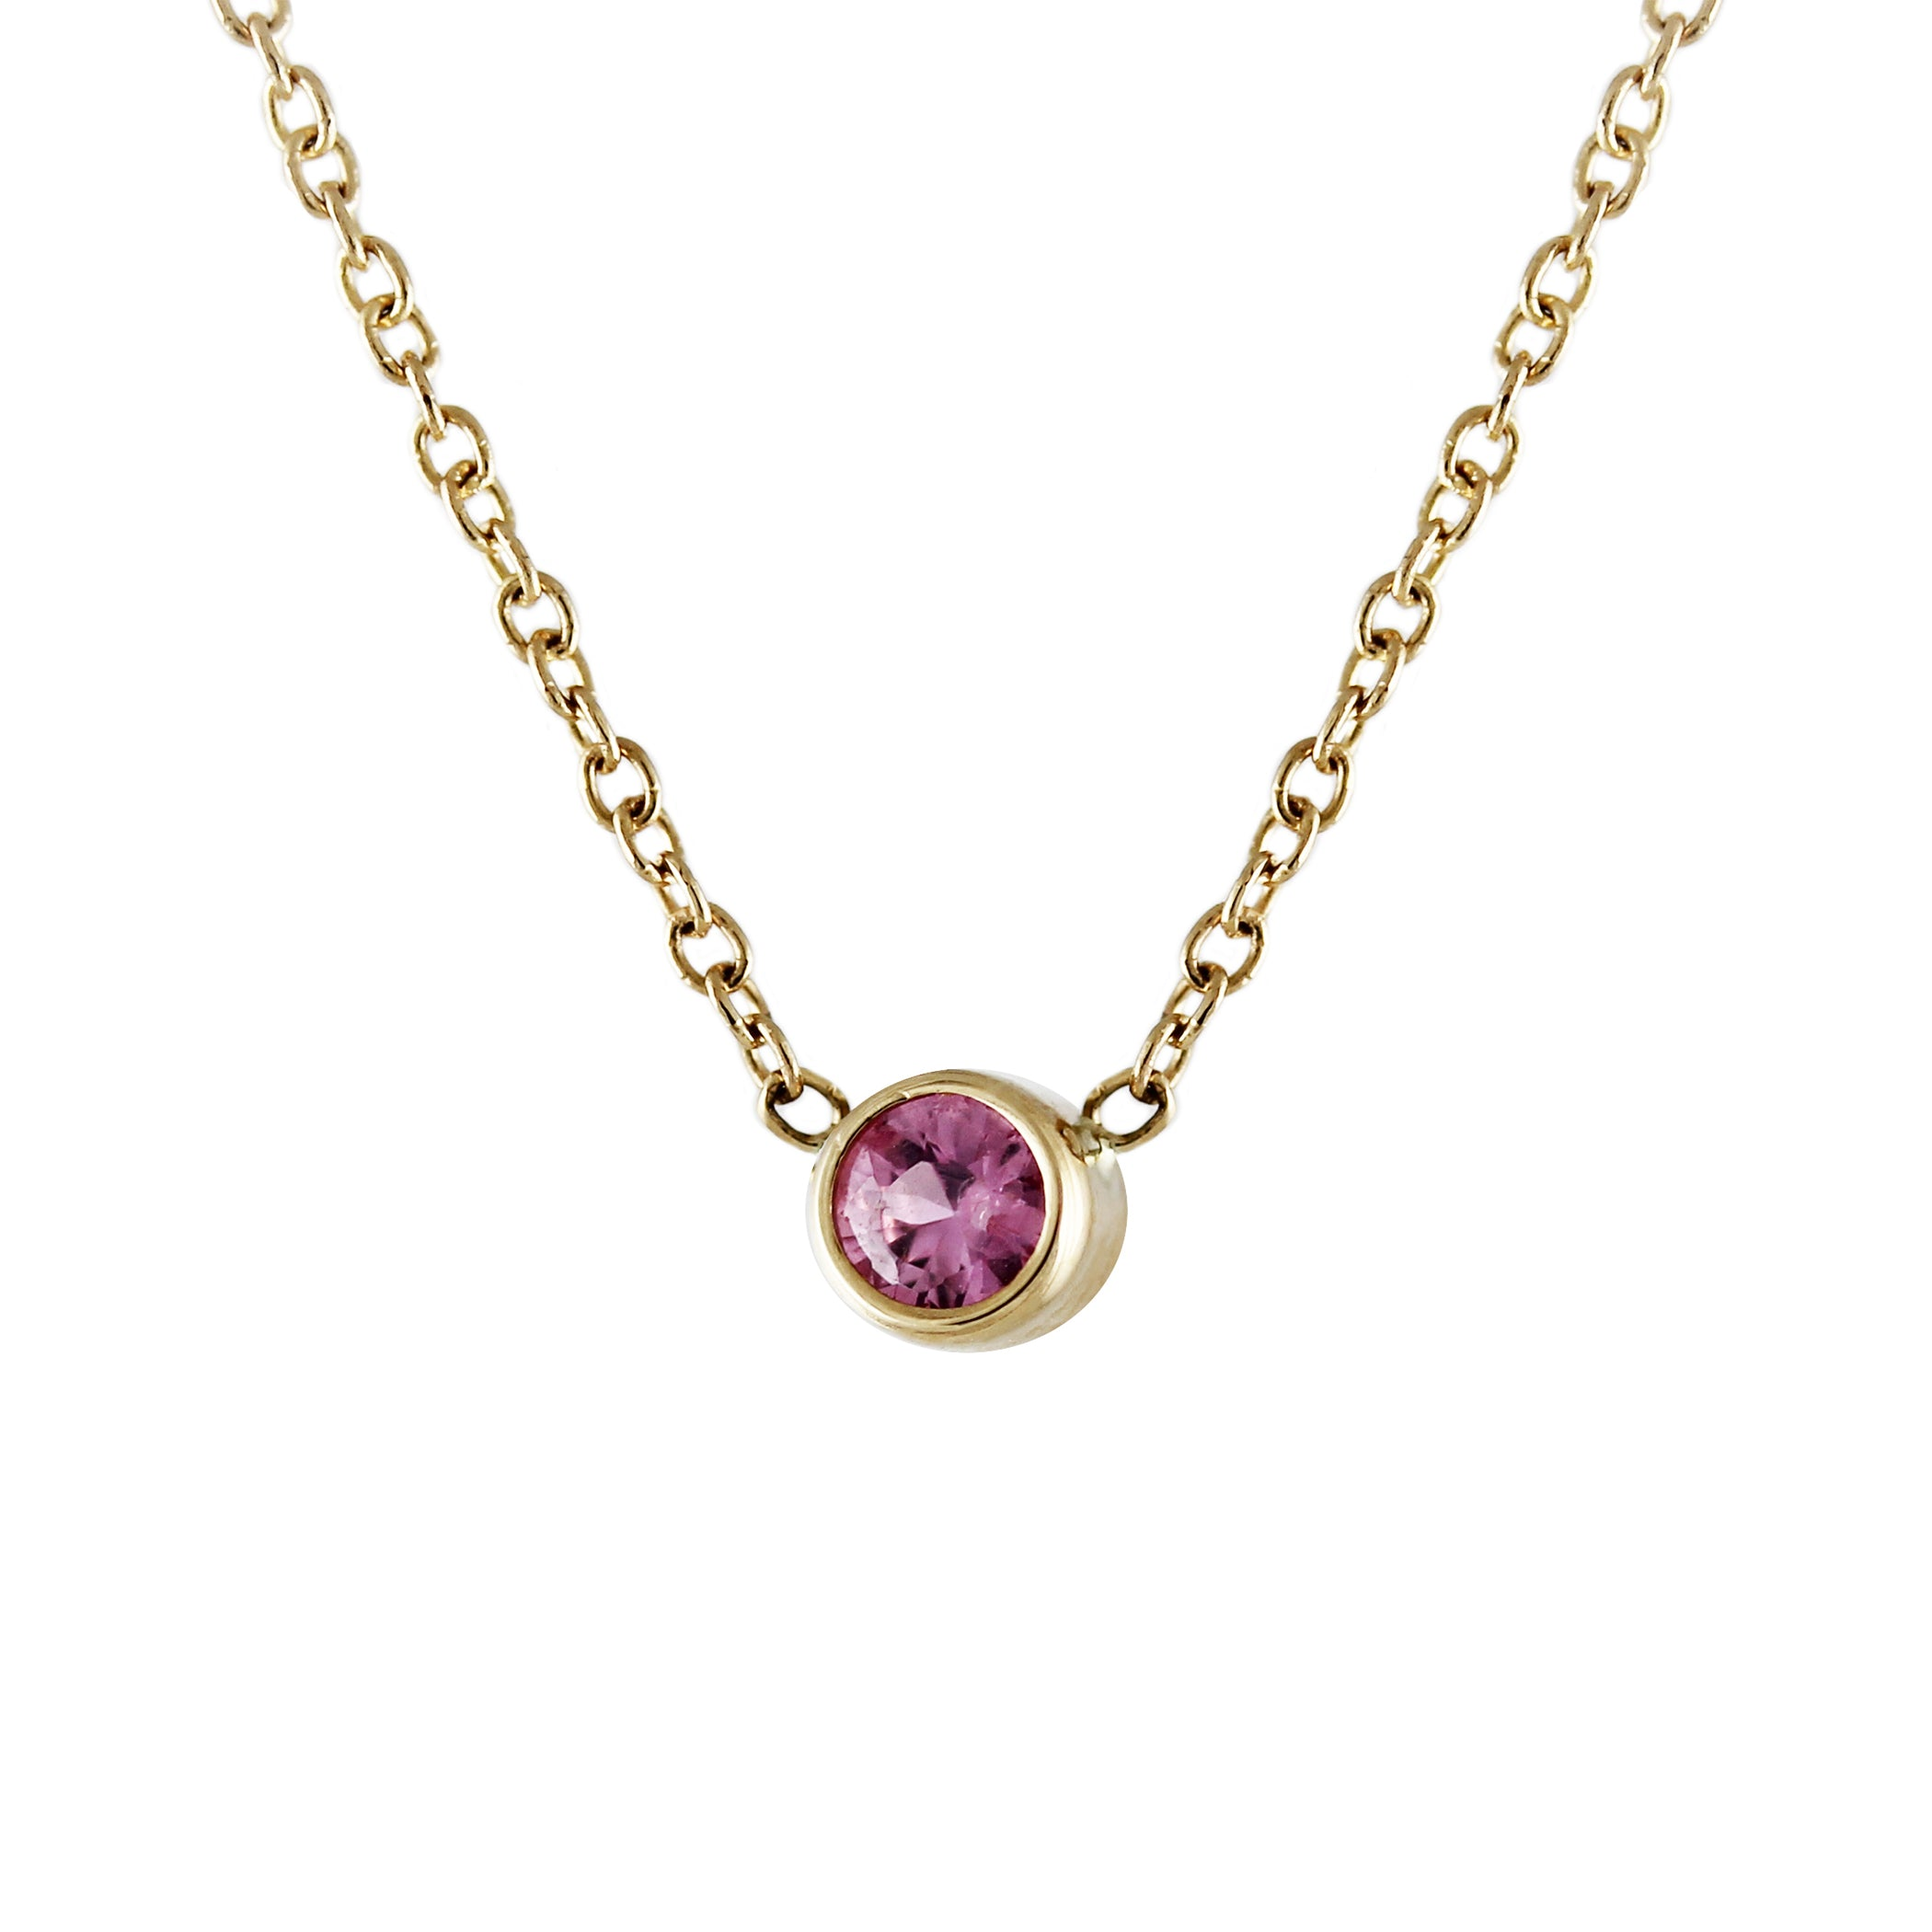 created xpy necklace pink gold diamond accent and butterfly pendant rose heart product sterling sapphire silver